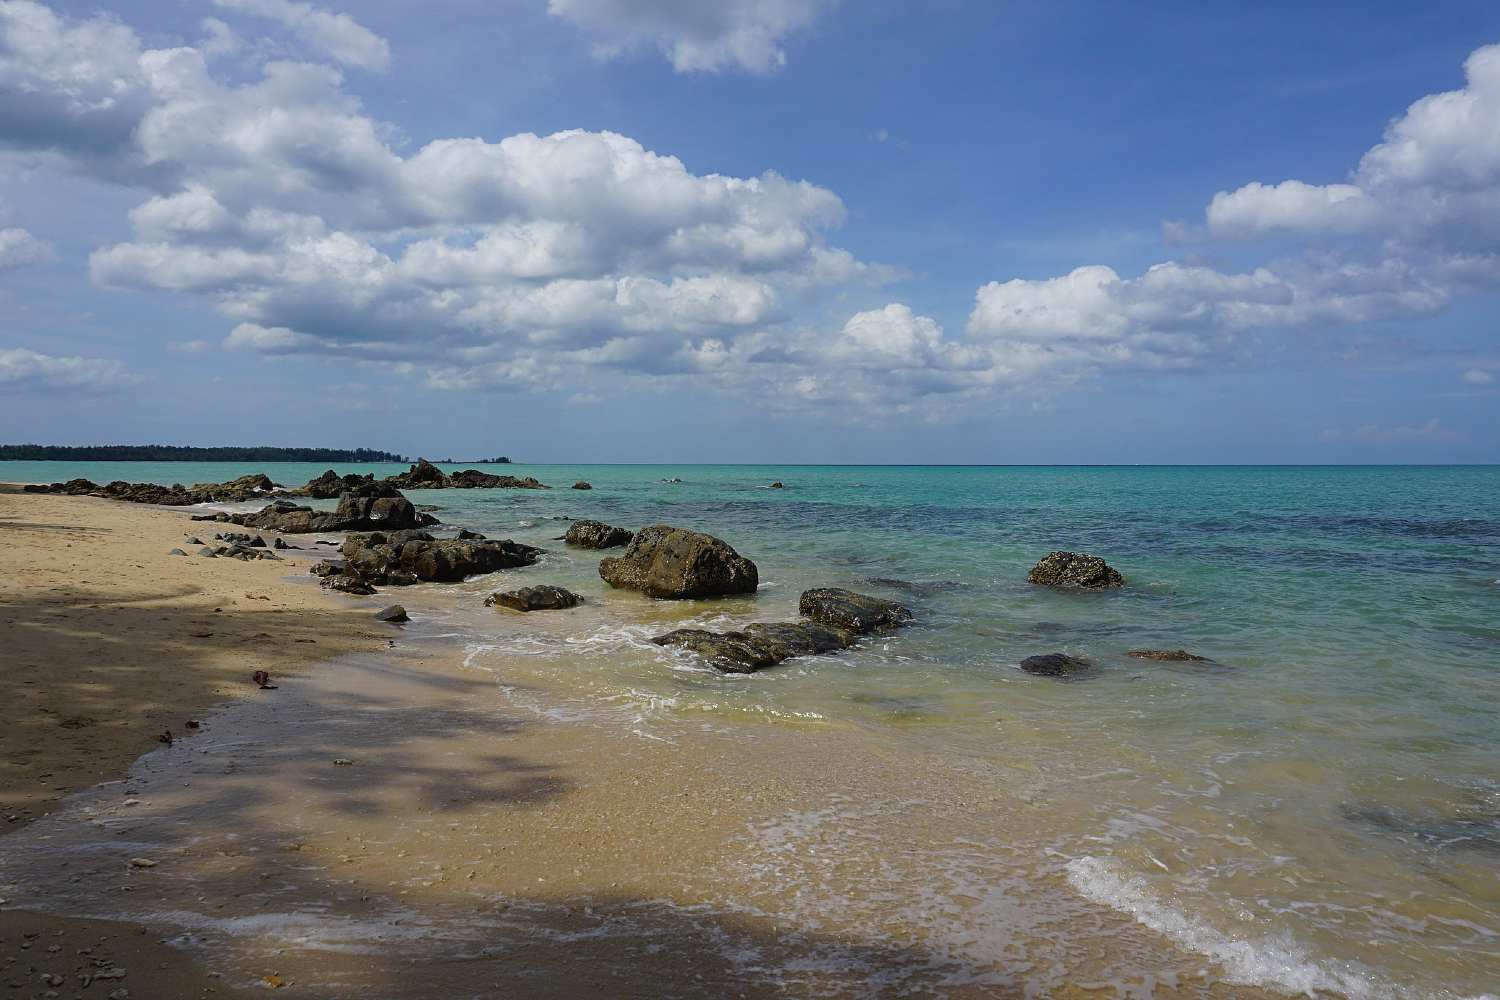 Rust in the clear blue sea and beach of Khao Lak